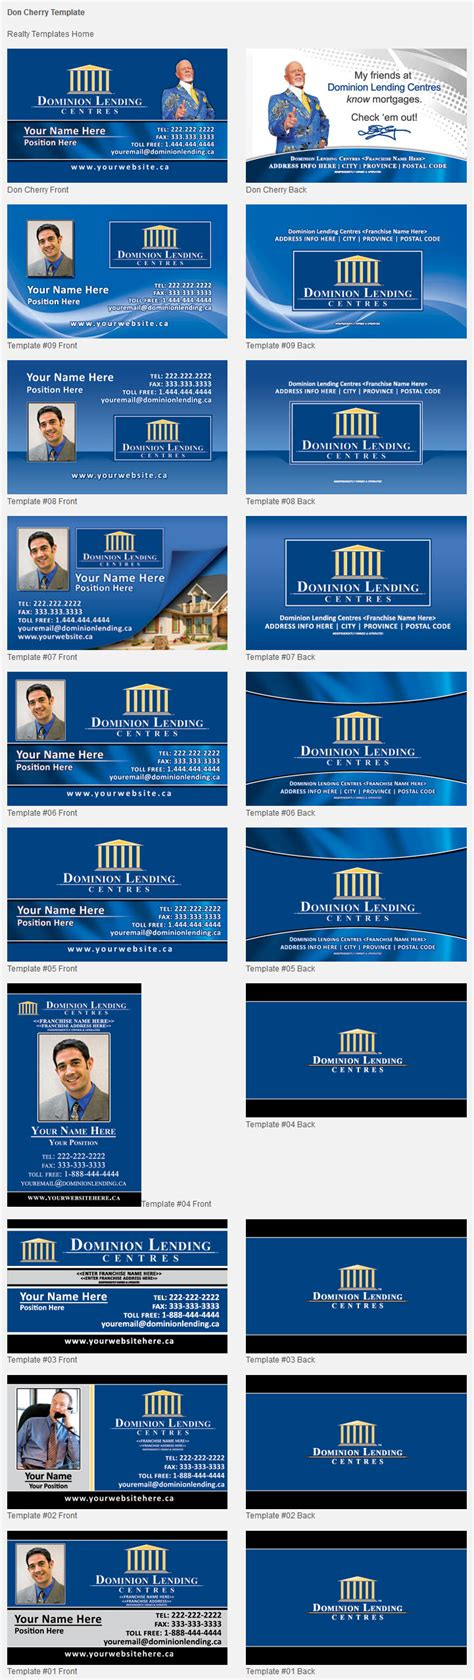 dominion card template dominion lending design templates unico print media